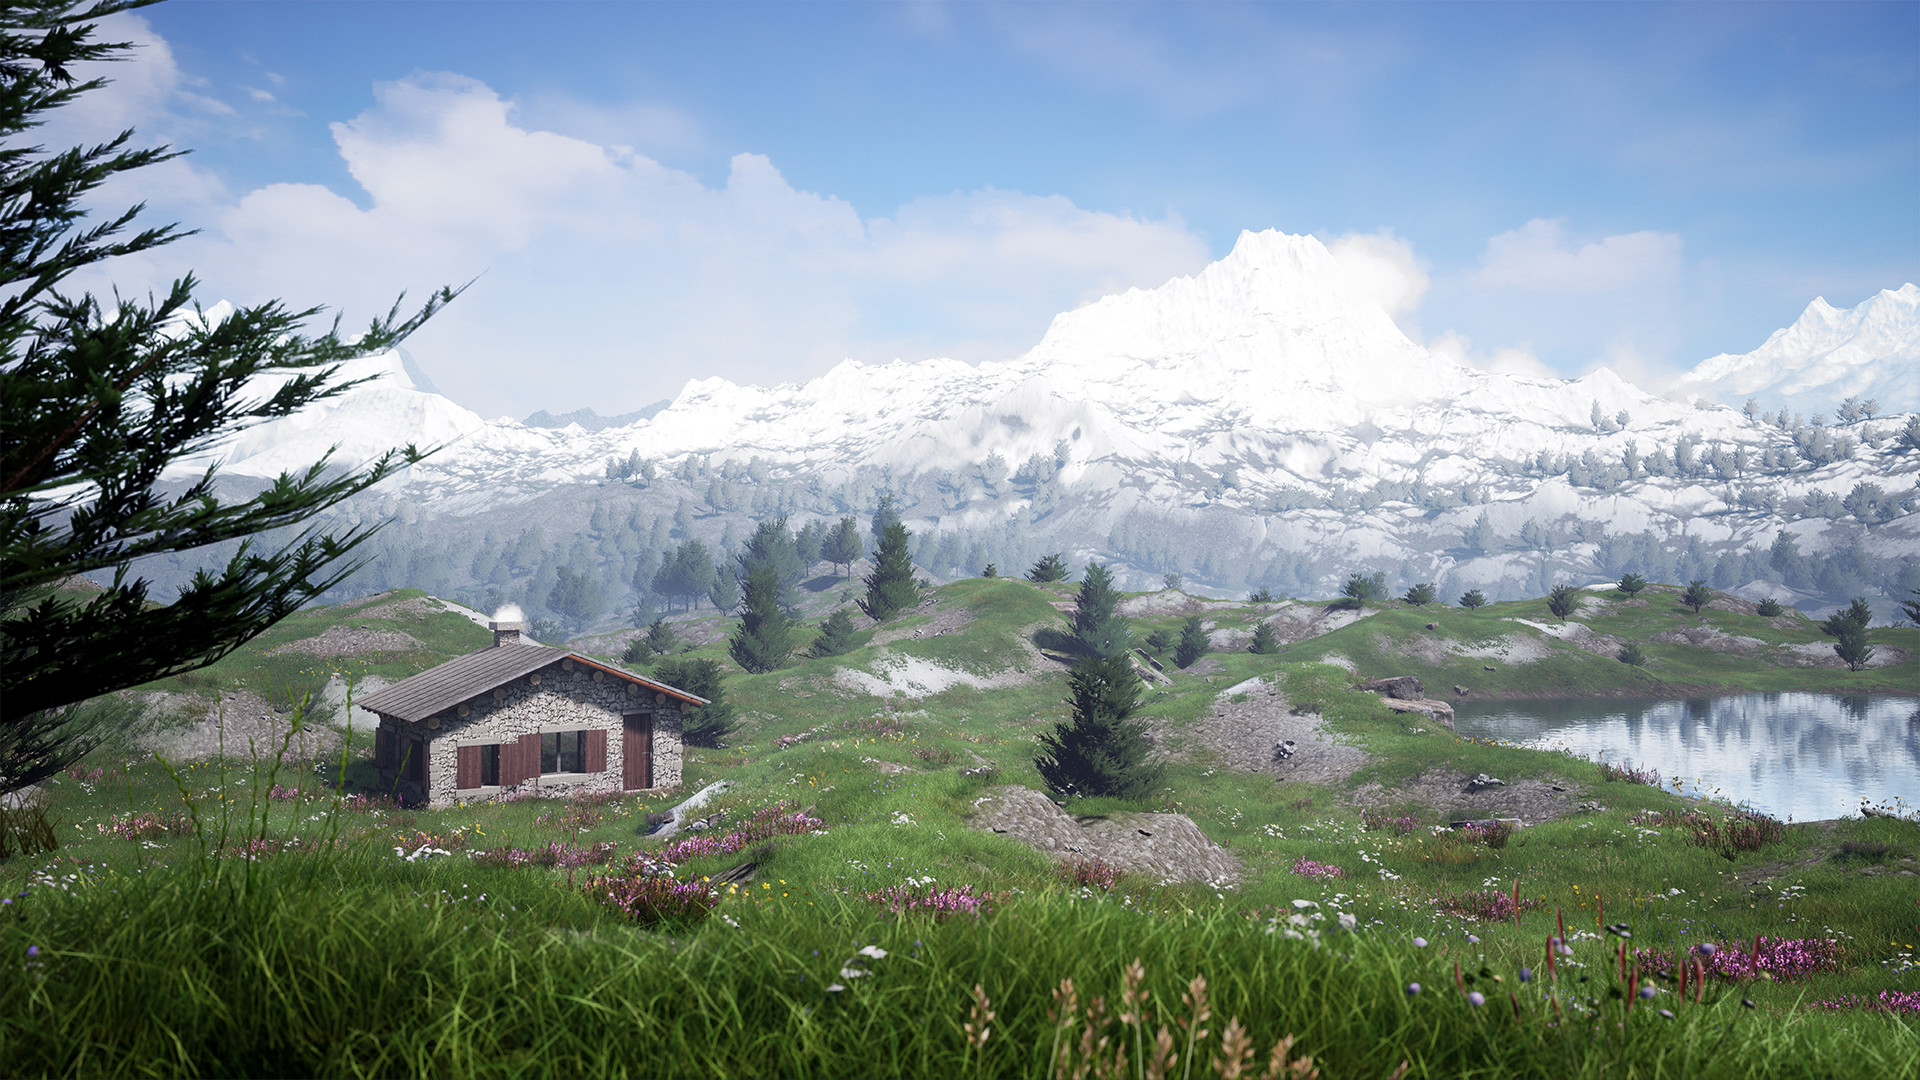 ArtStation - UE4 Speed Alpin environment, Thibault Prédignac